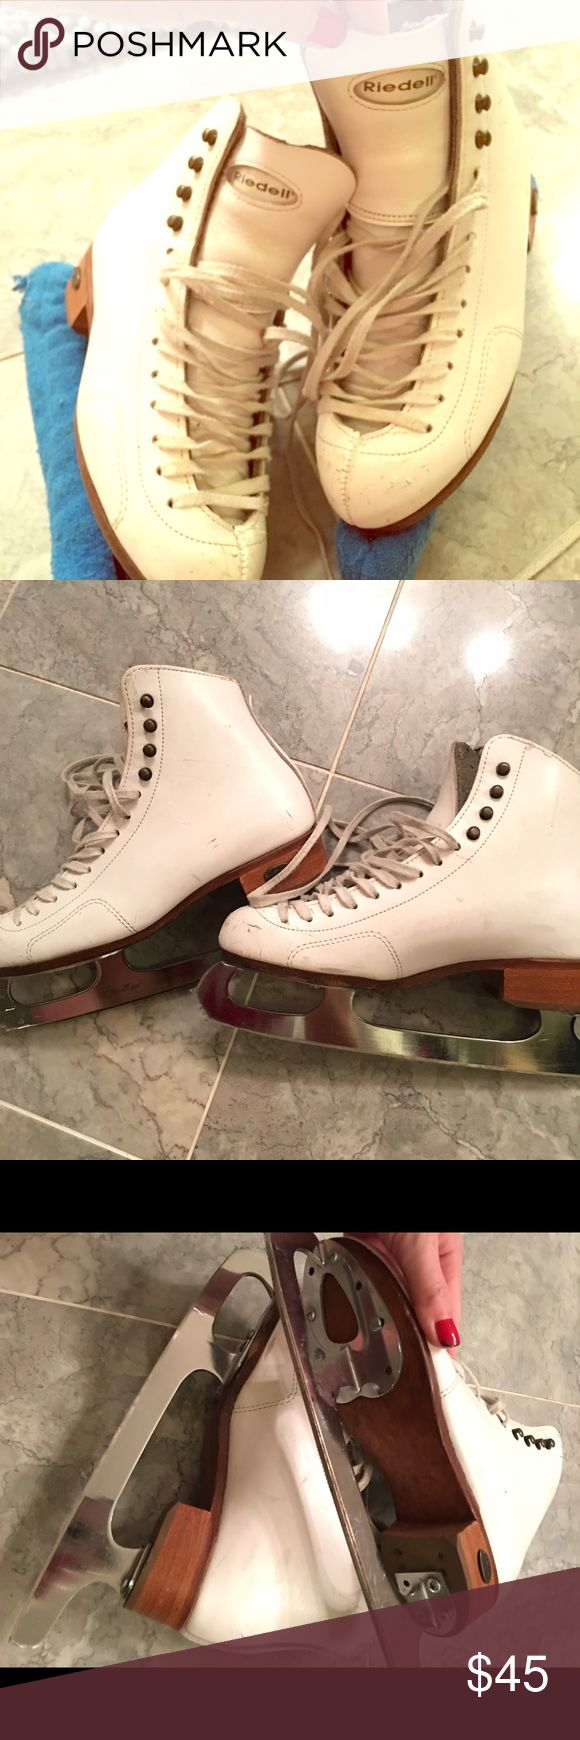 """💥SALE💥GIRLS """"RIEDELL"""" ICE SKATES! USED, DECENT CONDITION GIRLS ICE SKATES Riedell Shoes Rain & Snow Boots"""